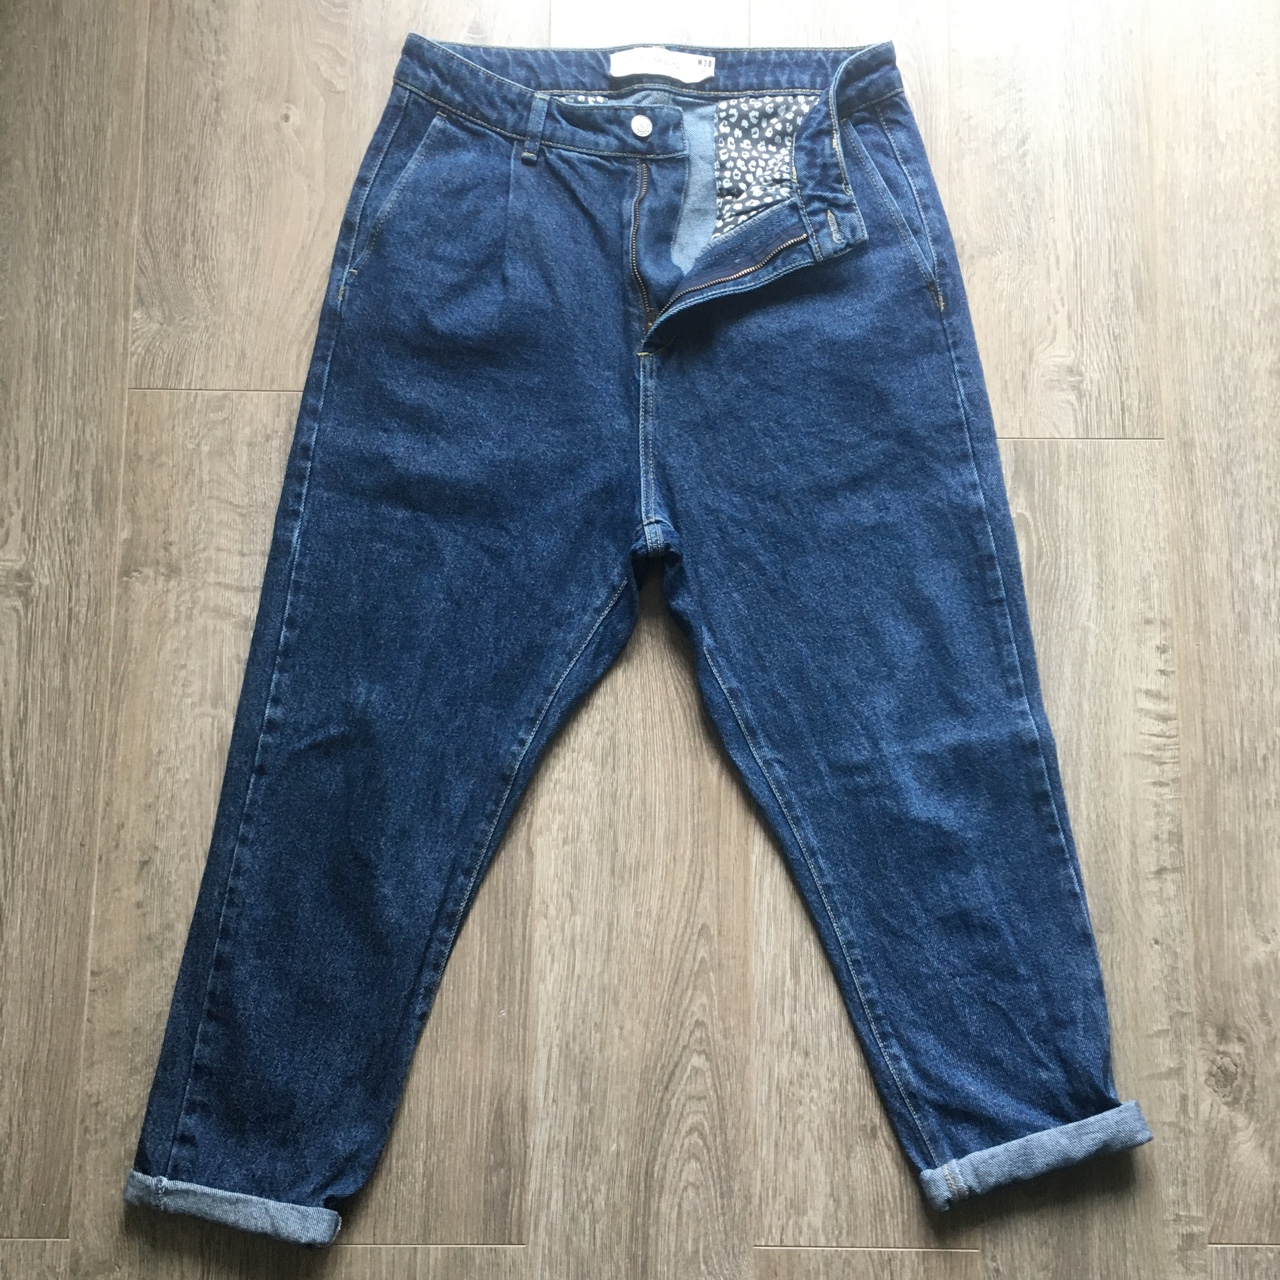 Product Image 1 - Cool 90's Vintage style jeans